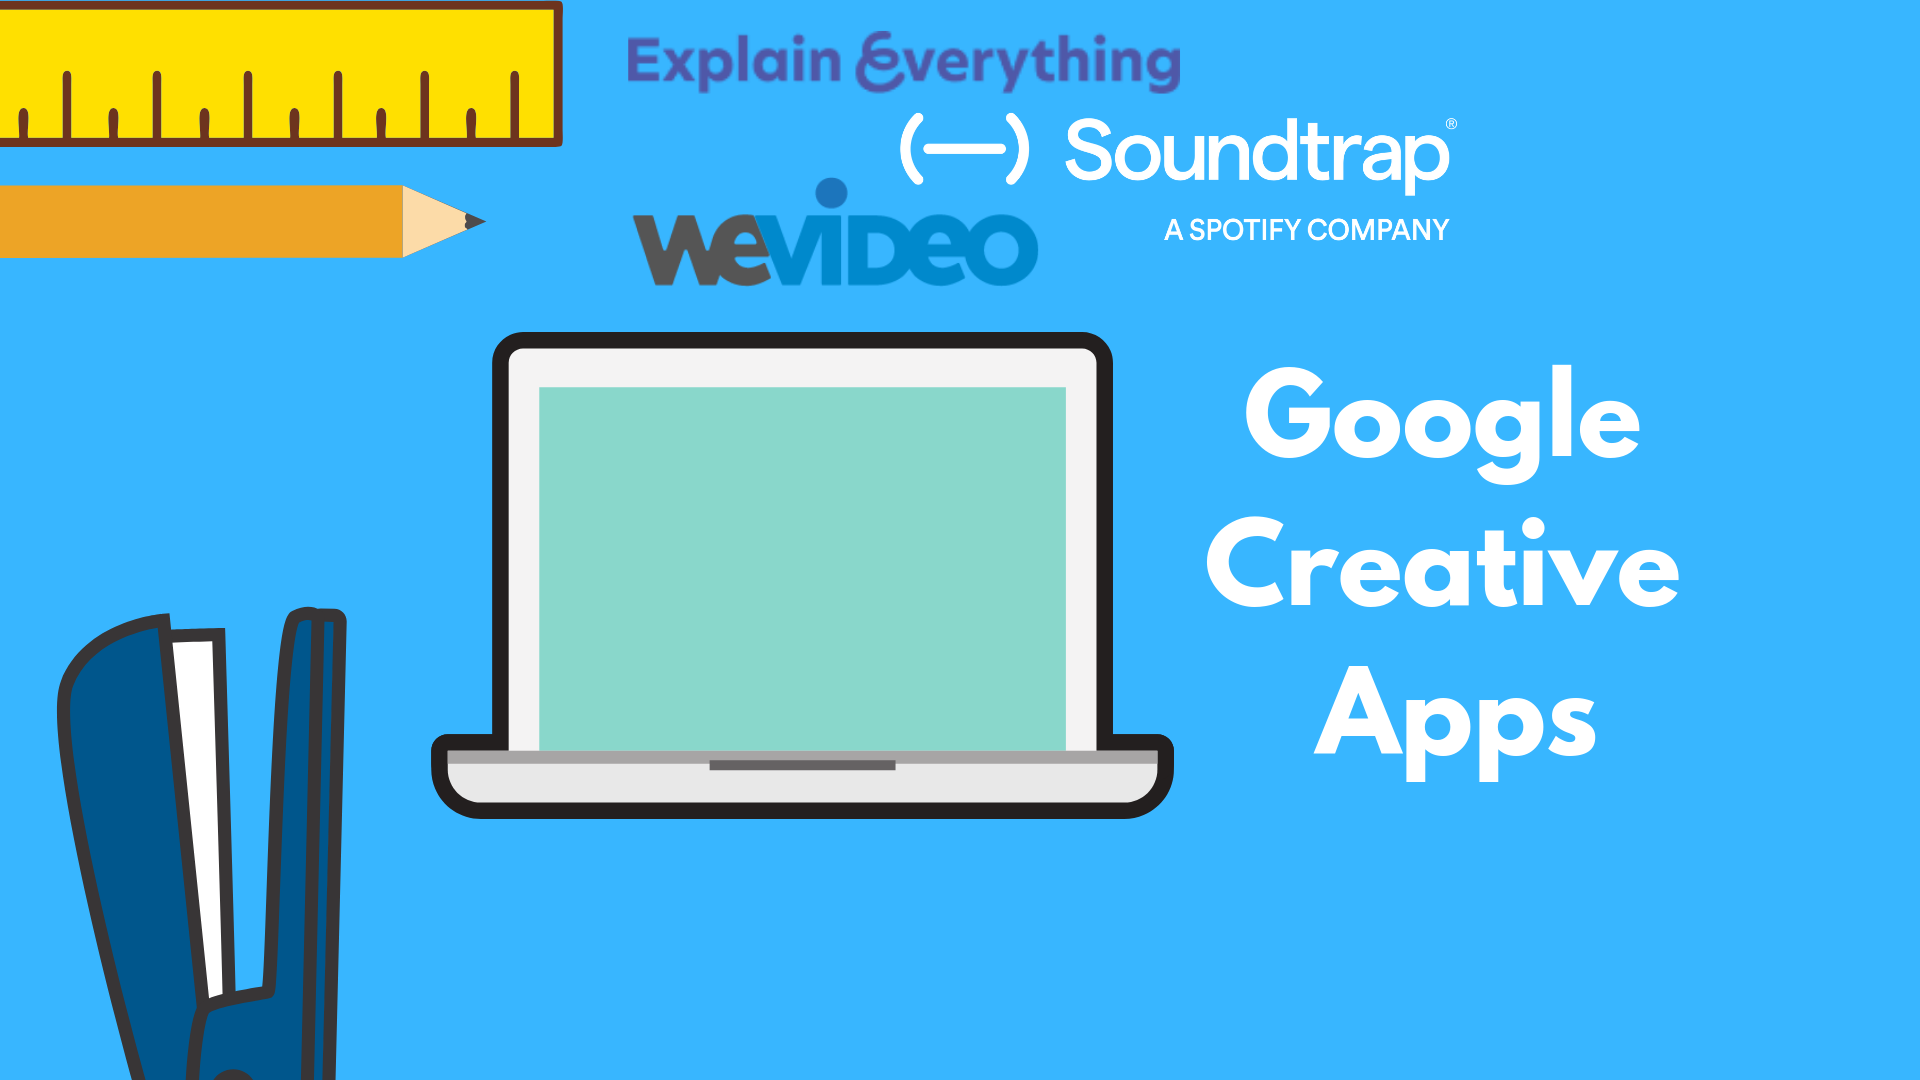 Google Creative Apps for Education – Why these apps will transform the classroom.